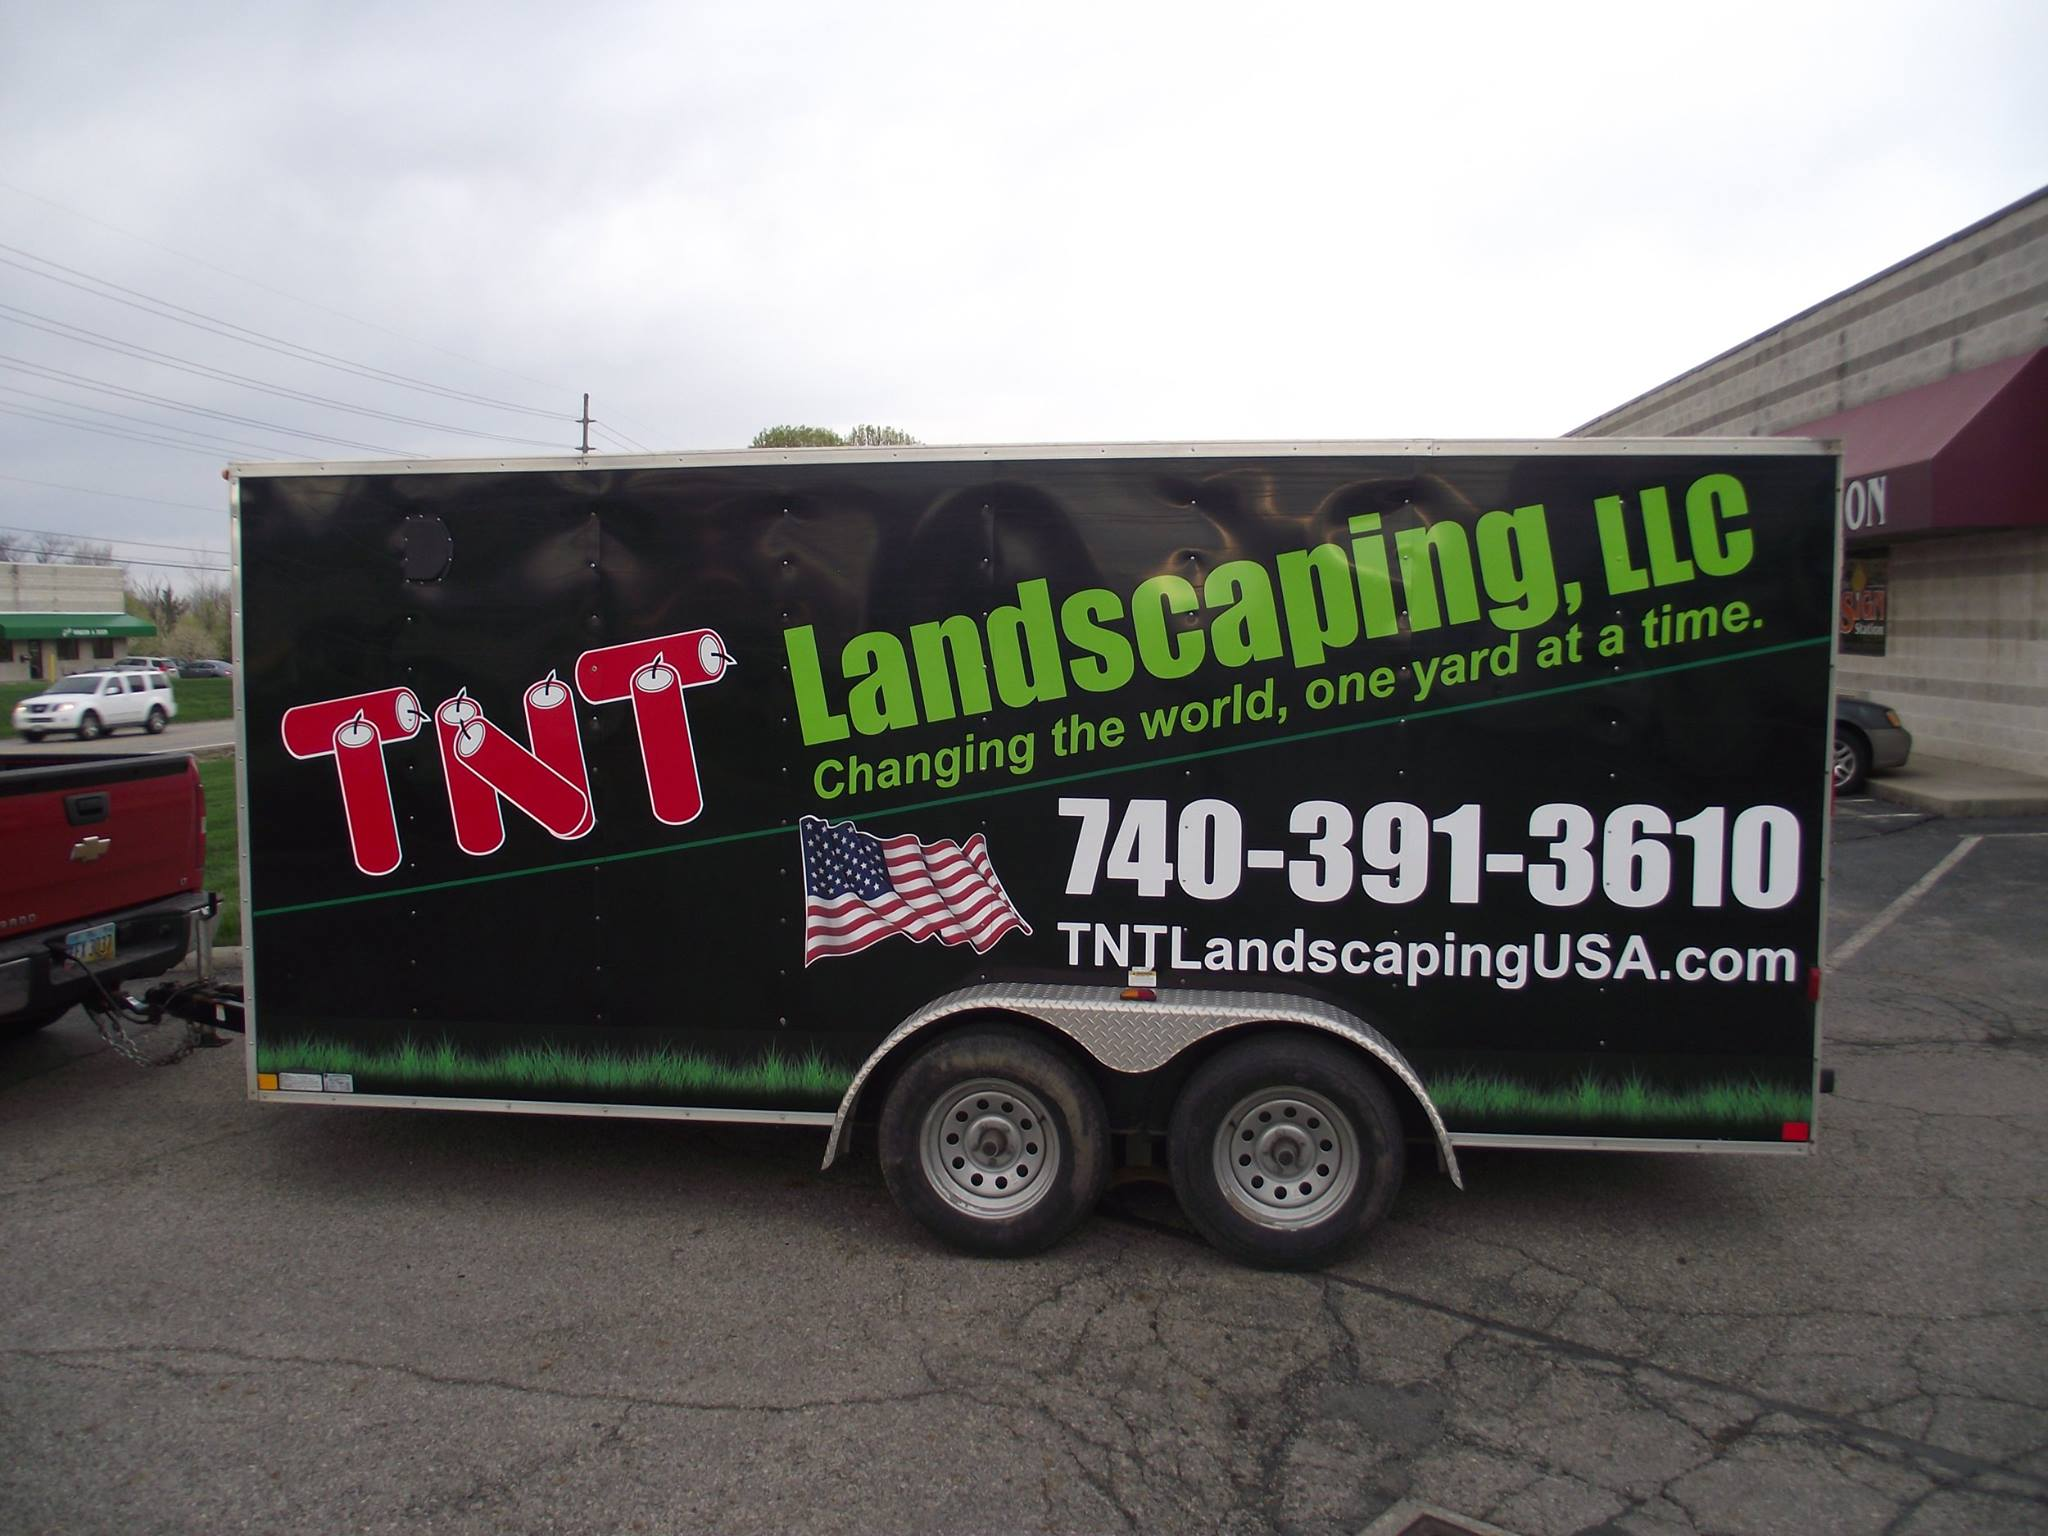 TNT landscaping